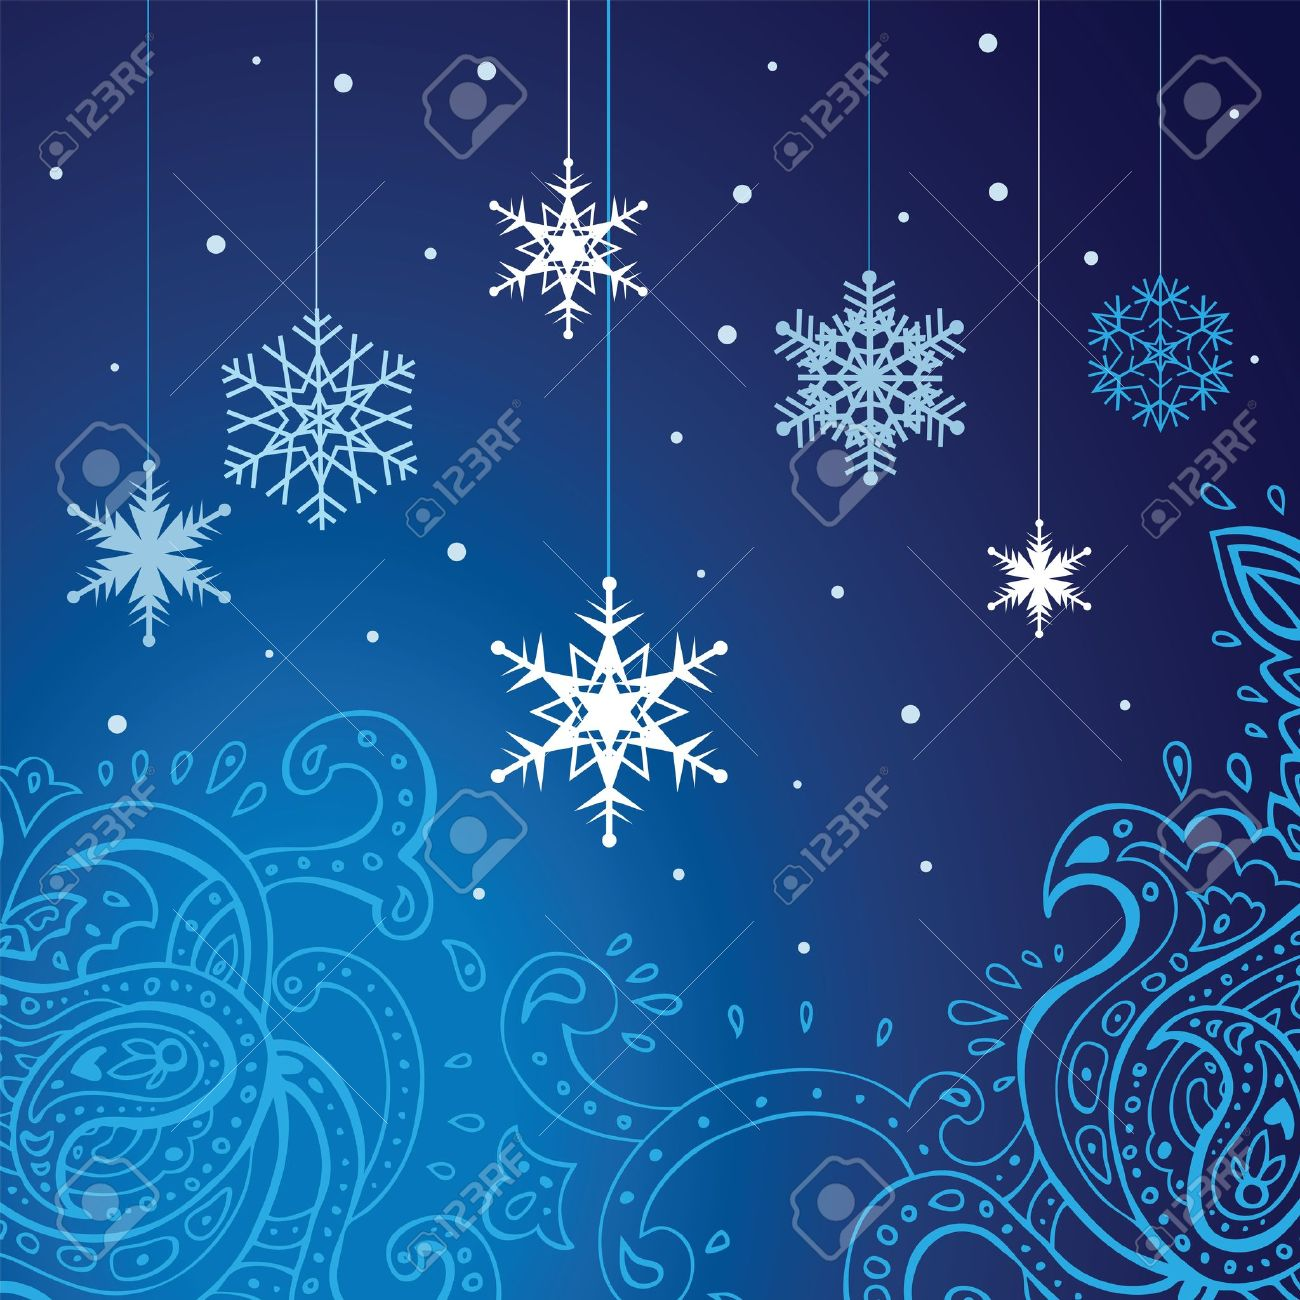 Winter snowflakes background  New Year illustration Stock Vector - 15095144